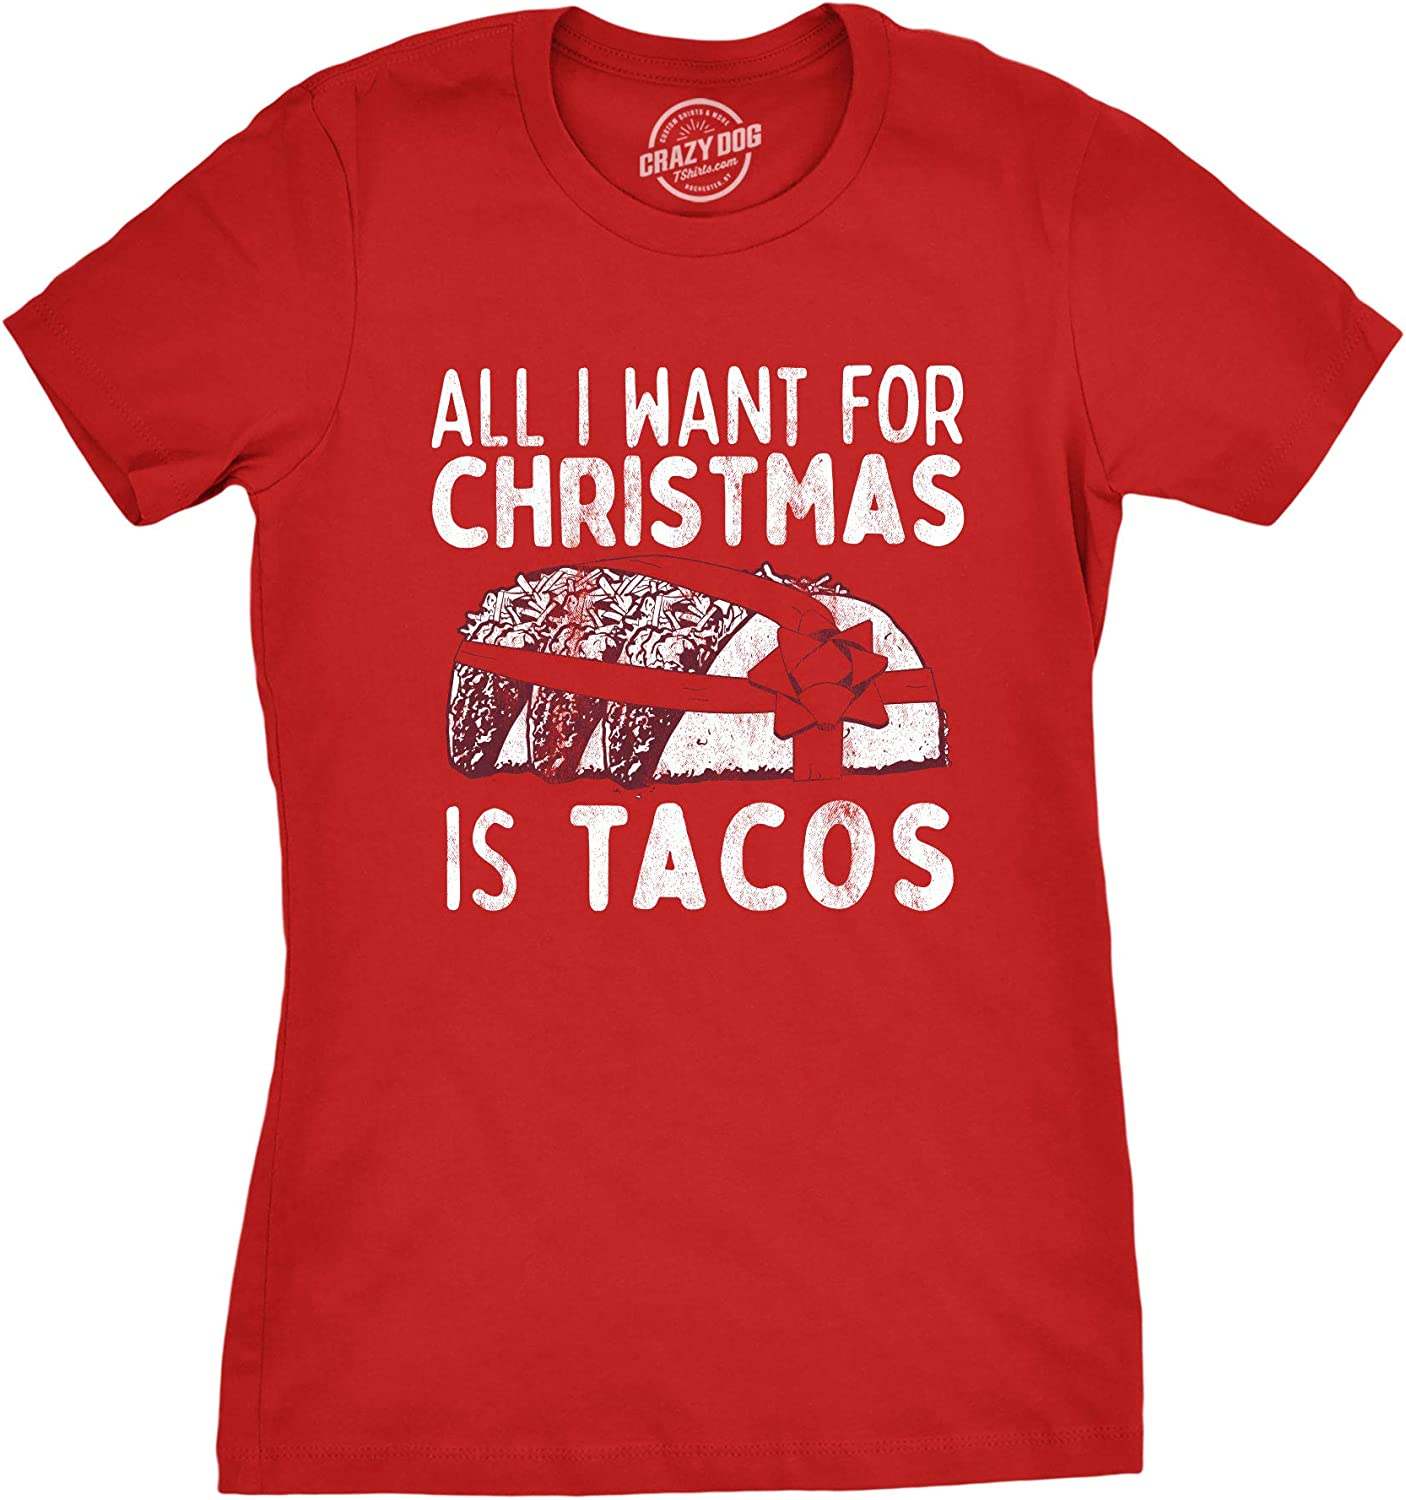 Crazy Dog T-Shirts Womens All I Want for Christmas is Tacos Tshirt Funny Mexican Food Holiday Tee